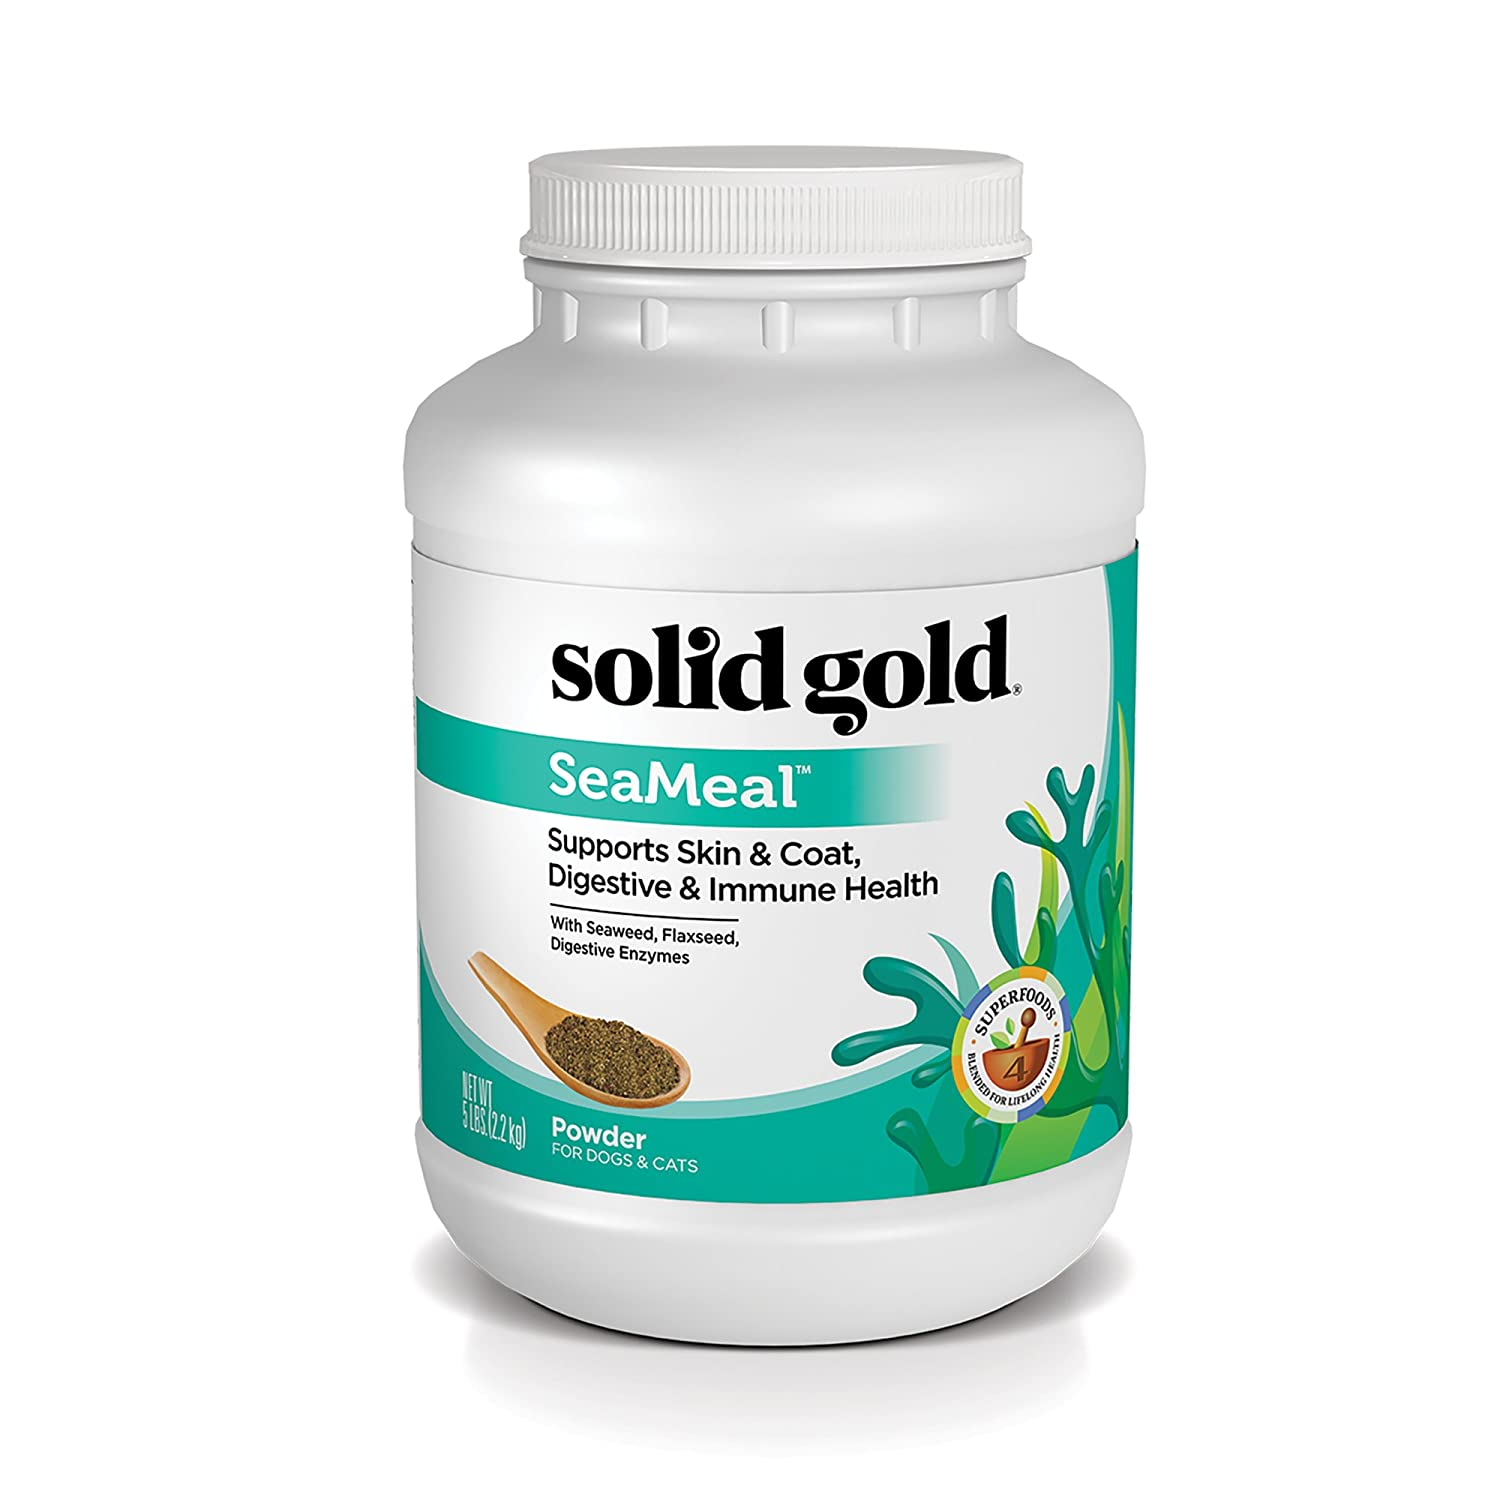 Solid Gold SeaMeal Kelp-Based Supplement for Skin Coat, Digestive Immune Health in Dogs Cats Natural, Holistic Grain-Free Supplement